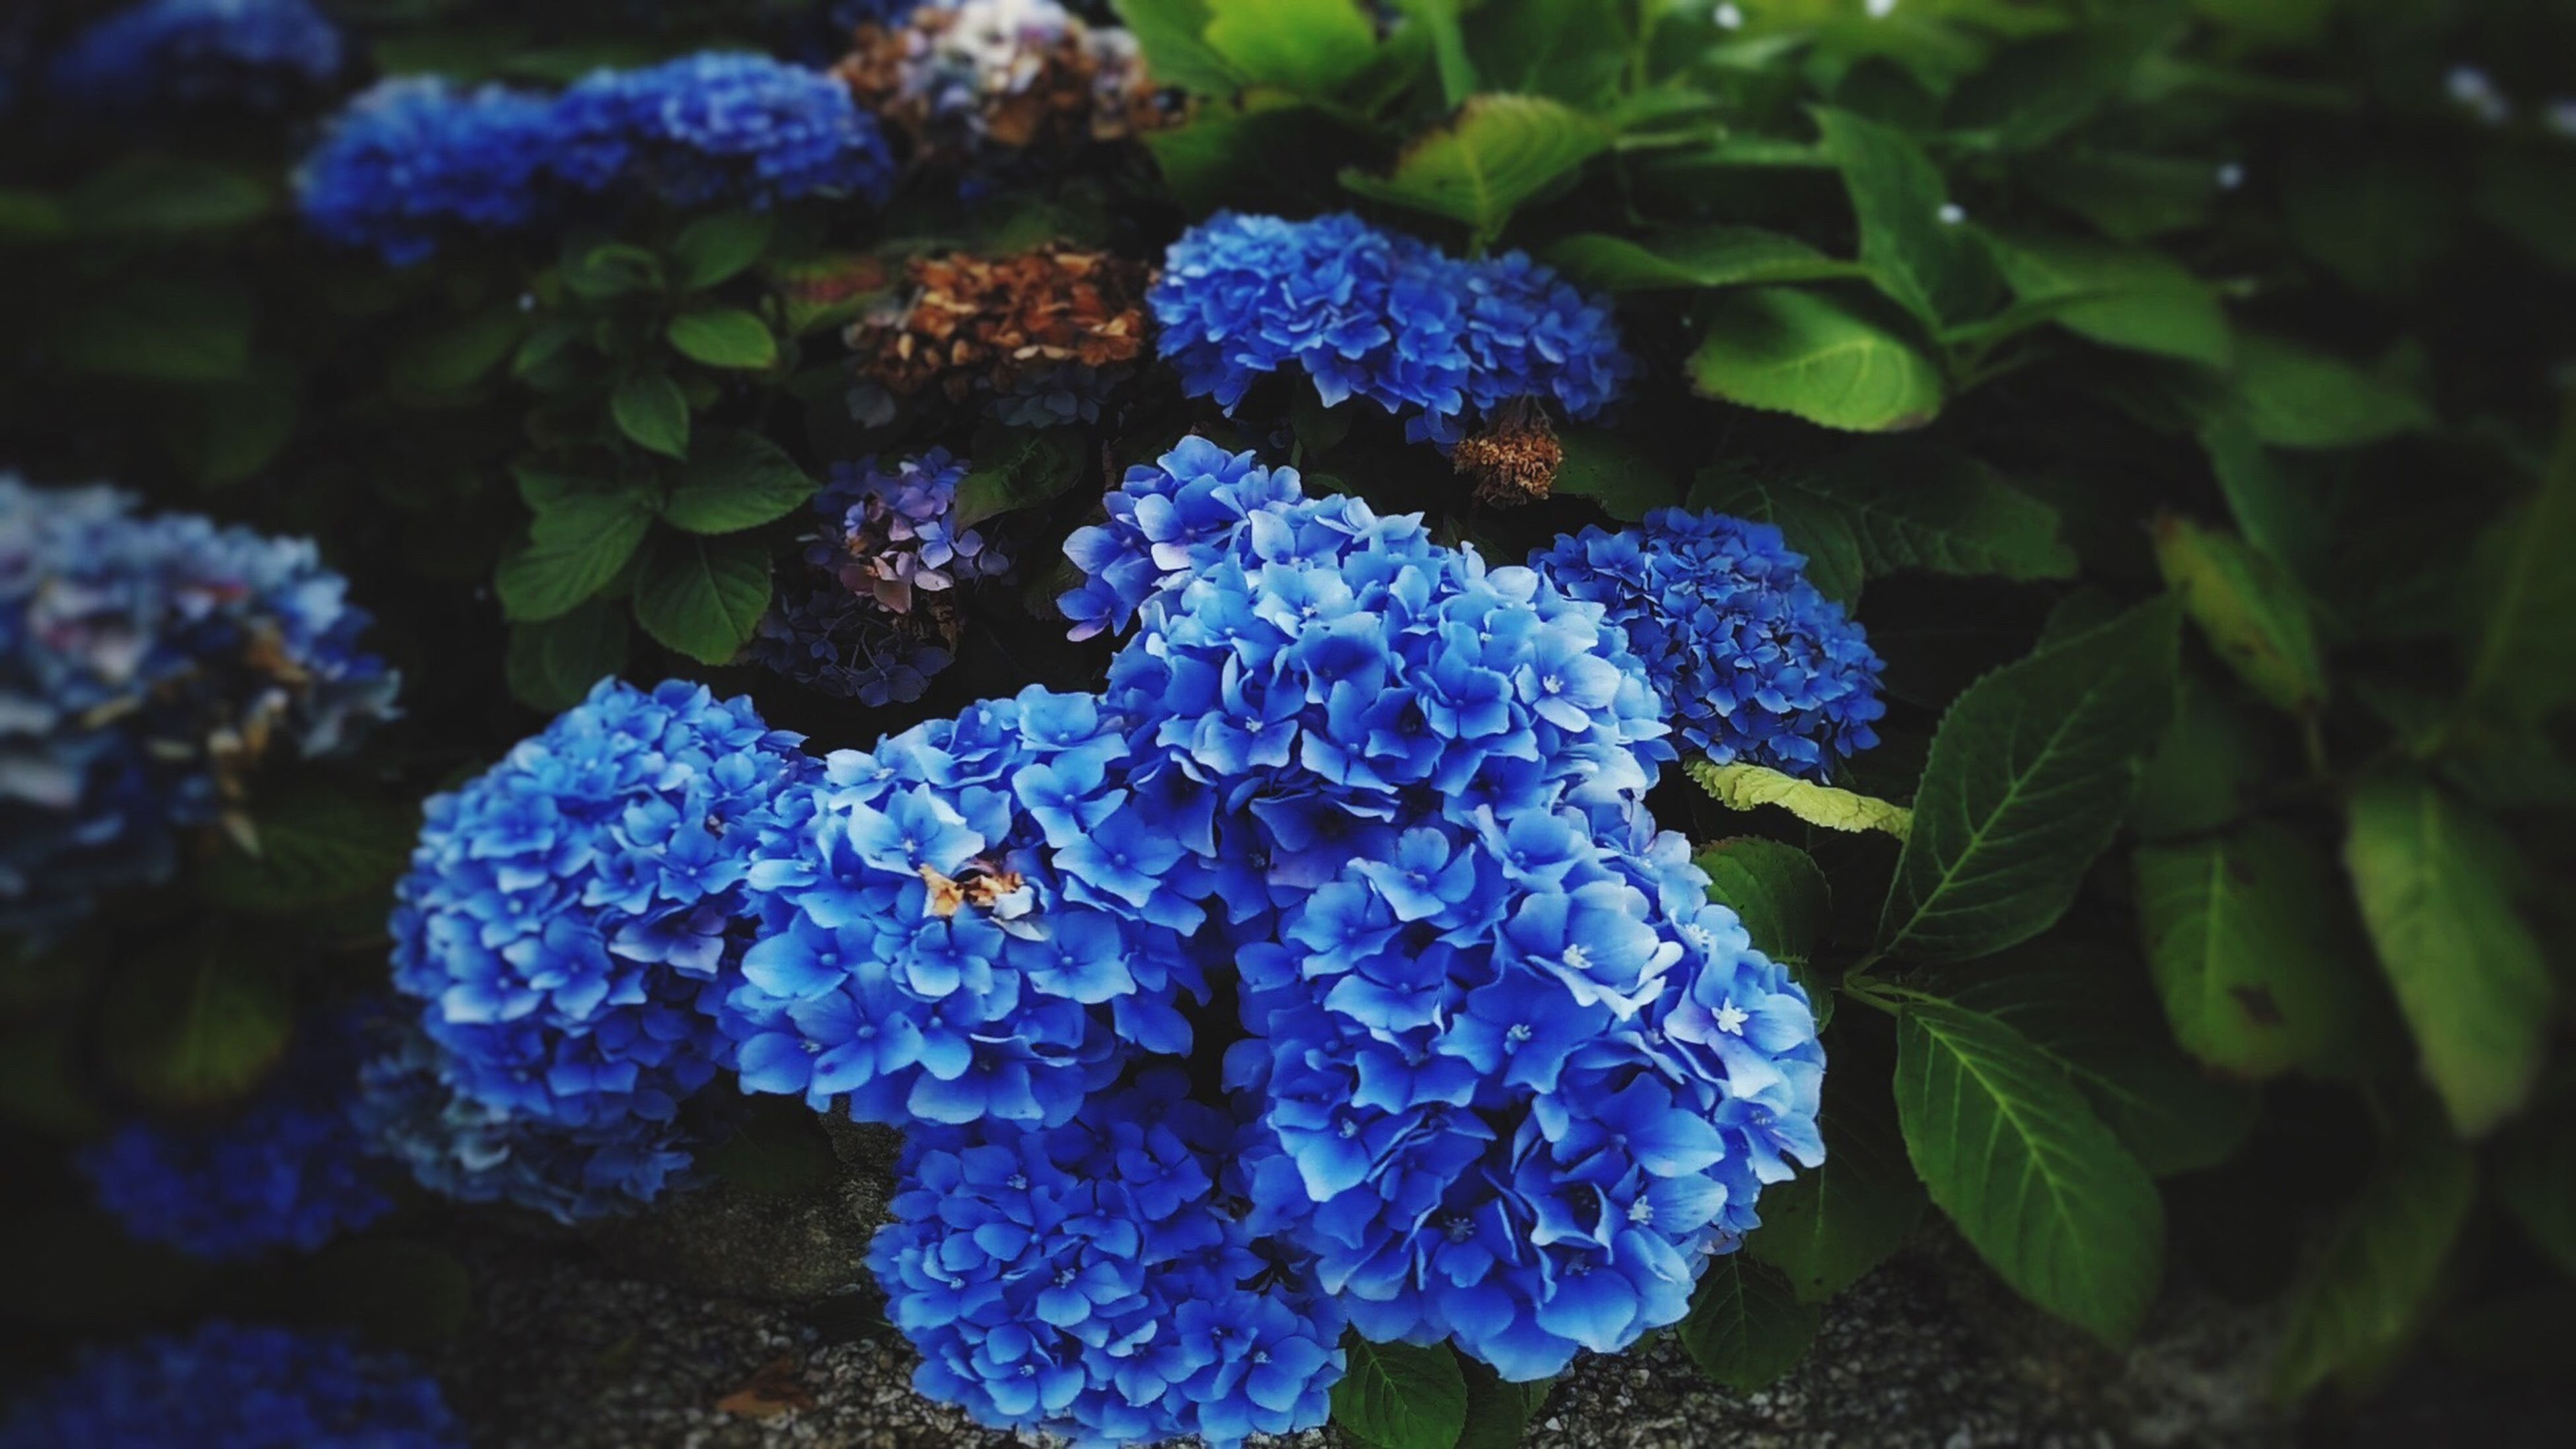 flower, fragility, freshness, blue, close-up, hydrangea, petal, beauty in nature, growth, purple, selective focus, bunch of flowers, leaf, plant, nature, in bloom, flower head, springtime, park - man made space, multi colored, blossom, vibrant color, hyacinth, botany, day, bloom, no people, blooming, green, bunch, softness, green color